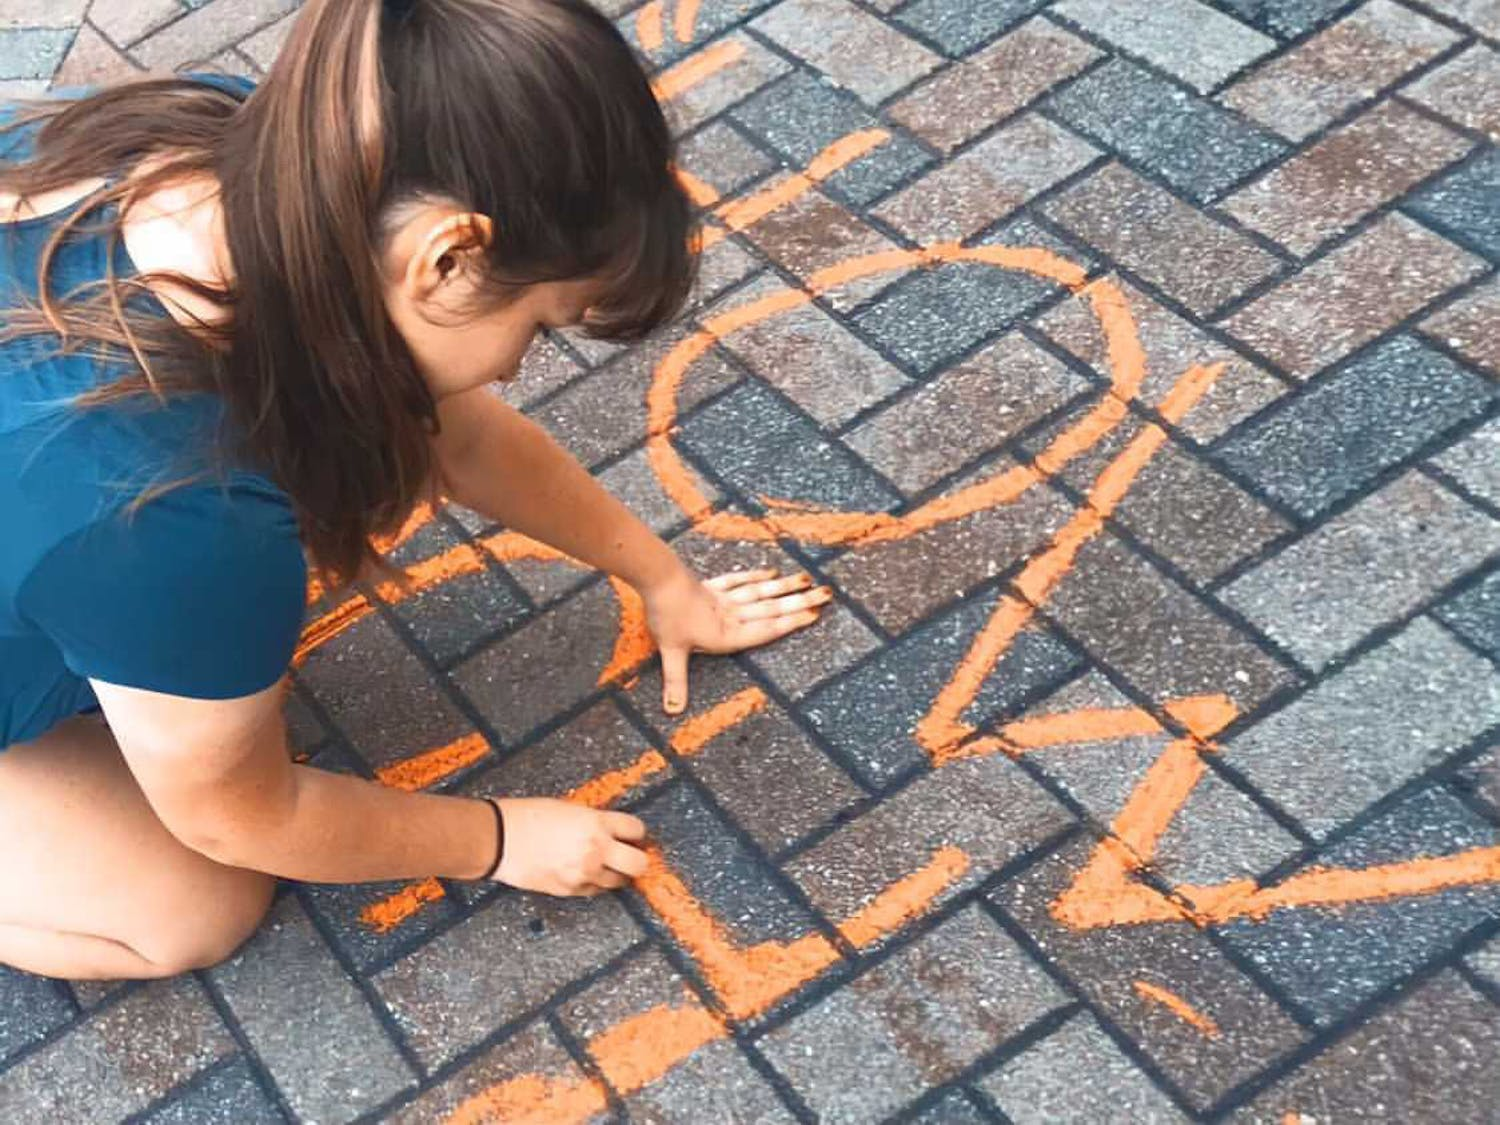 The organization chalks messages on the sidewalks of Gainesville to raise awareness about street harassment.